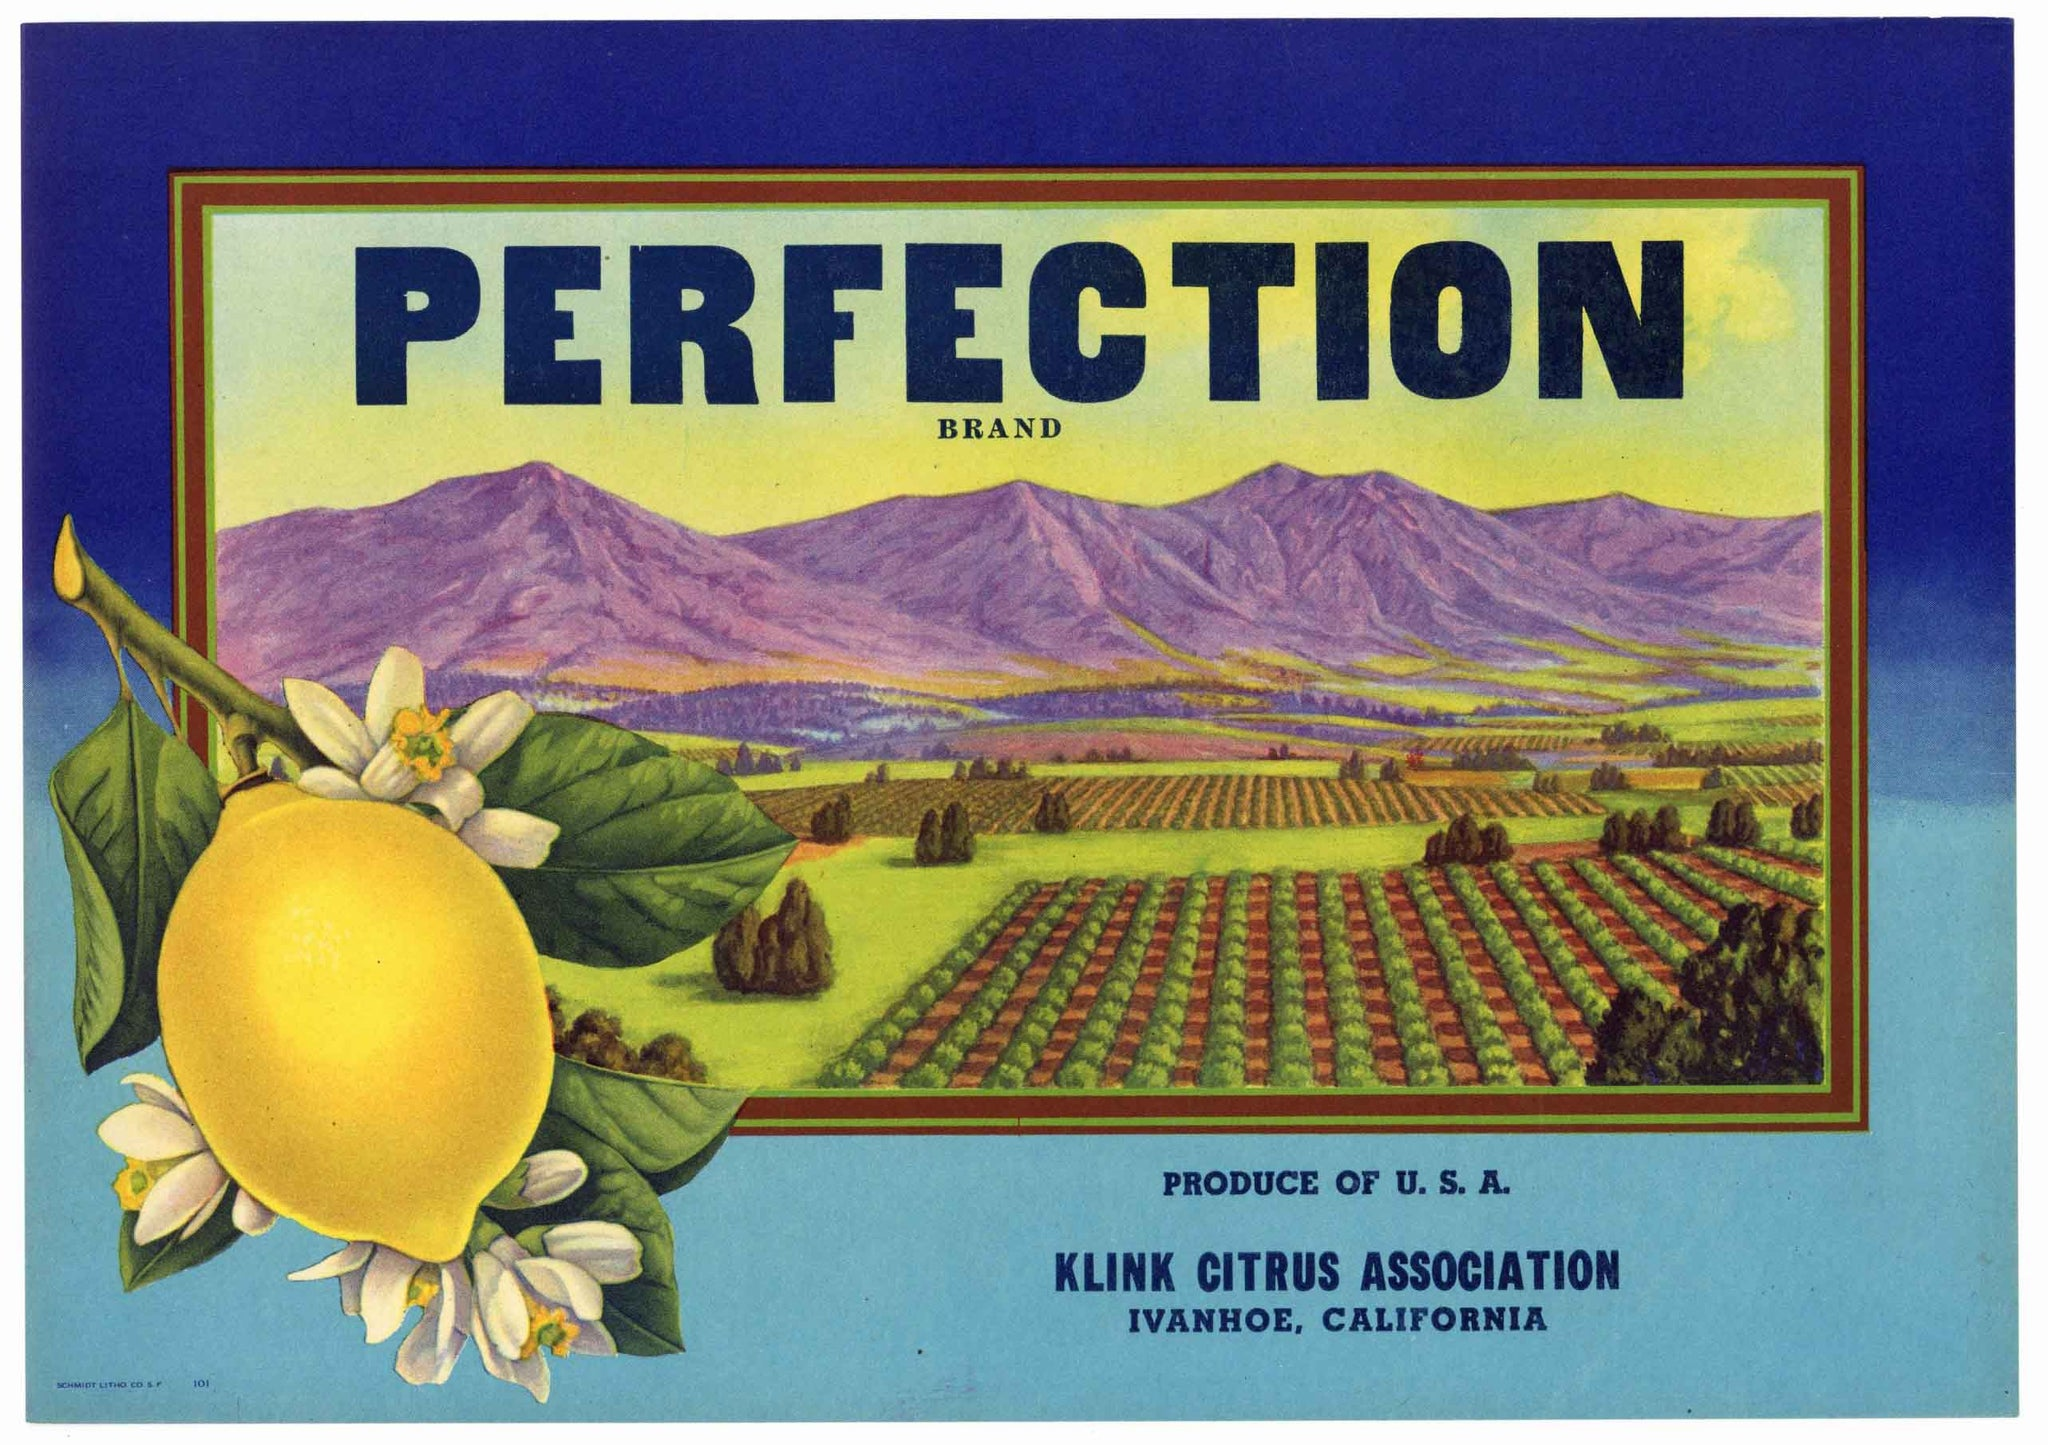 Perfection Brand Vintage Lemon Crate Label, stock